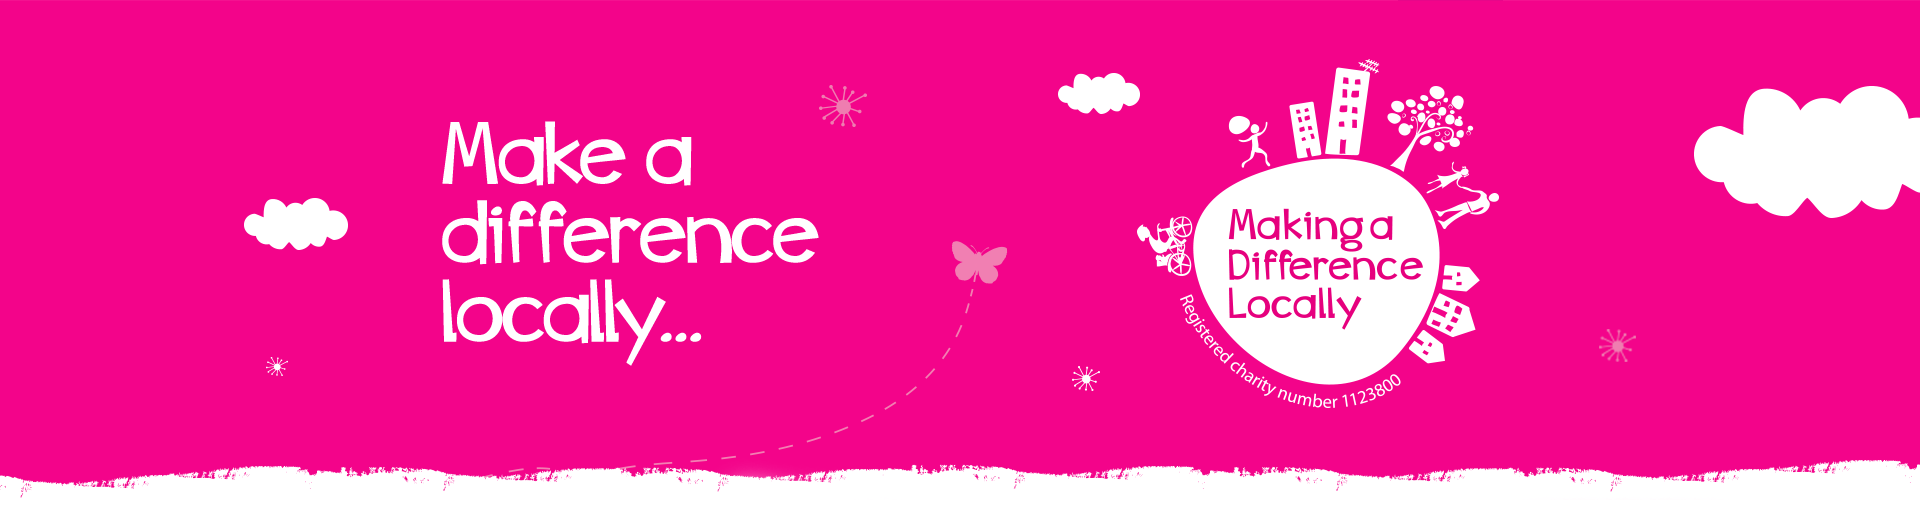 Make a Difference by Shopping at Nisa | Nisa Local